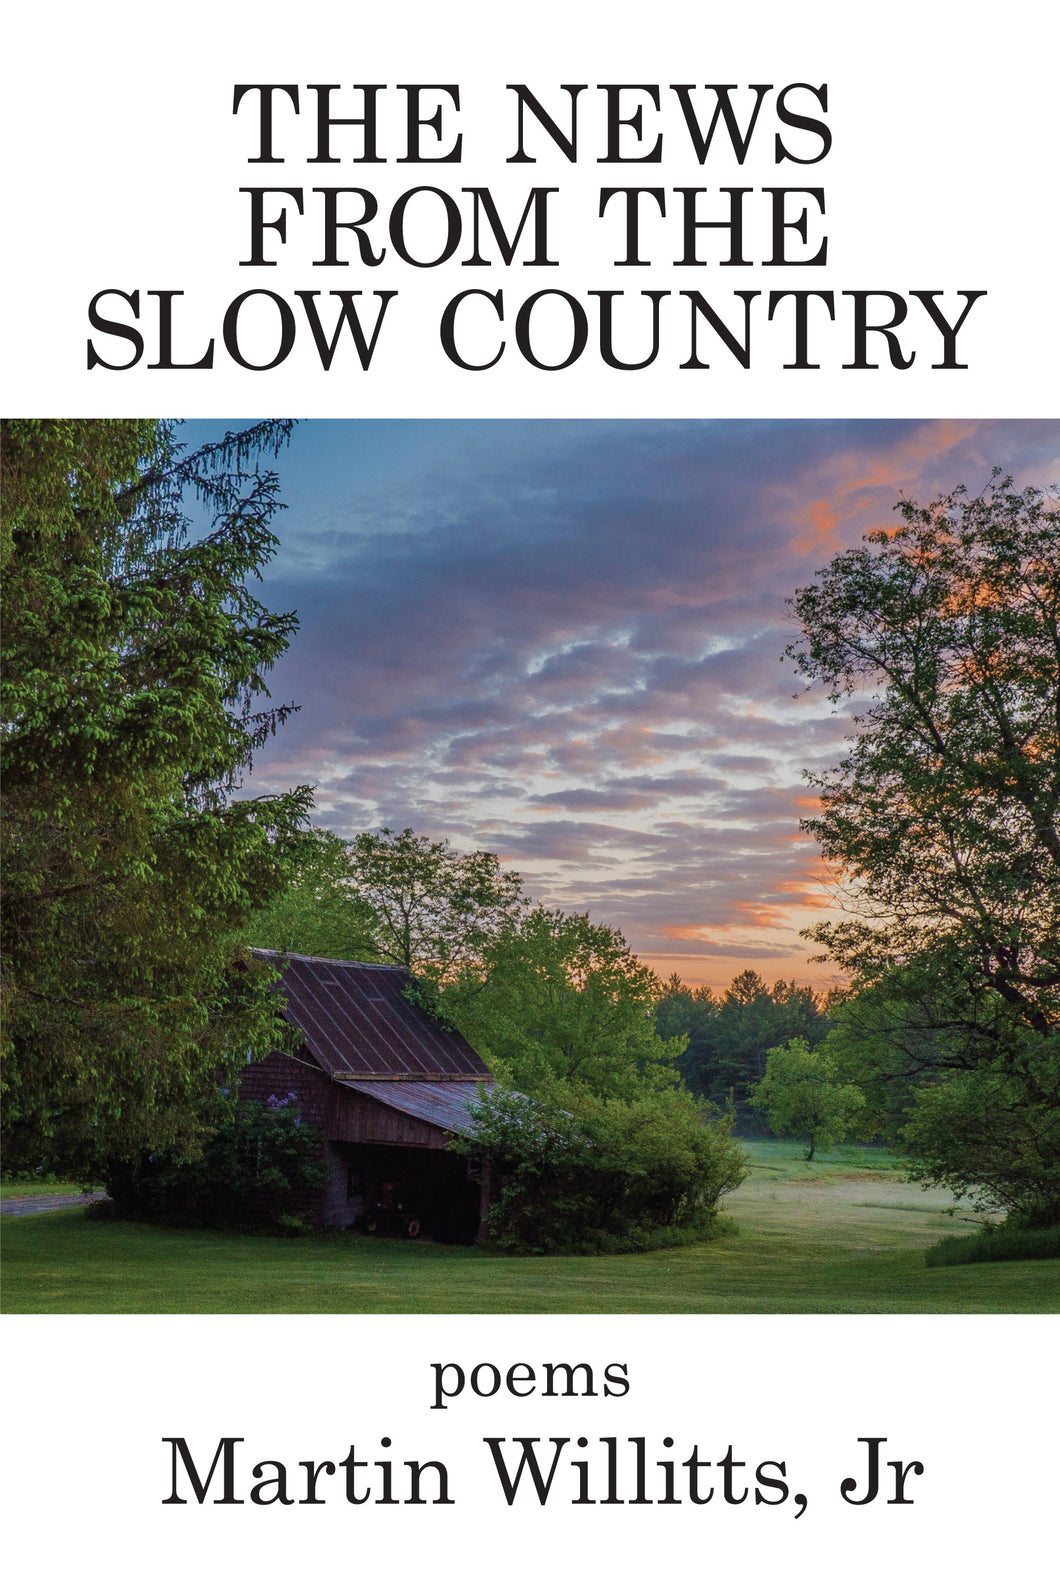 The News from the Slow Country